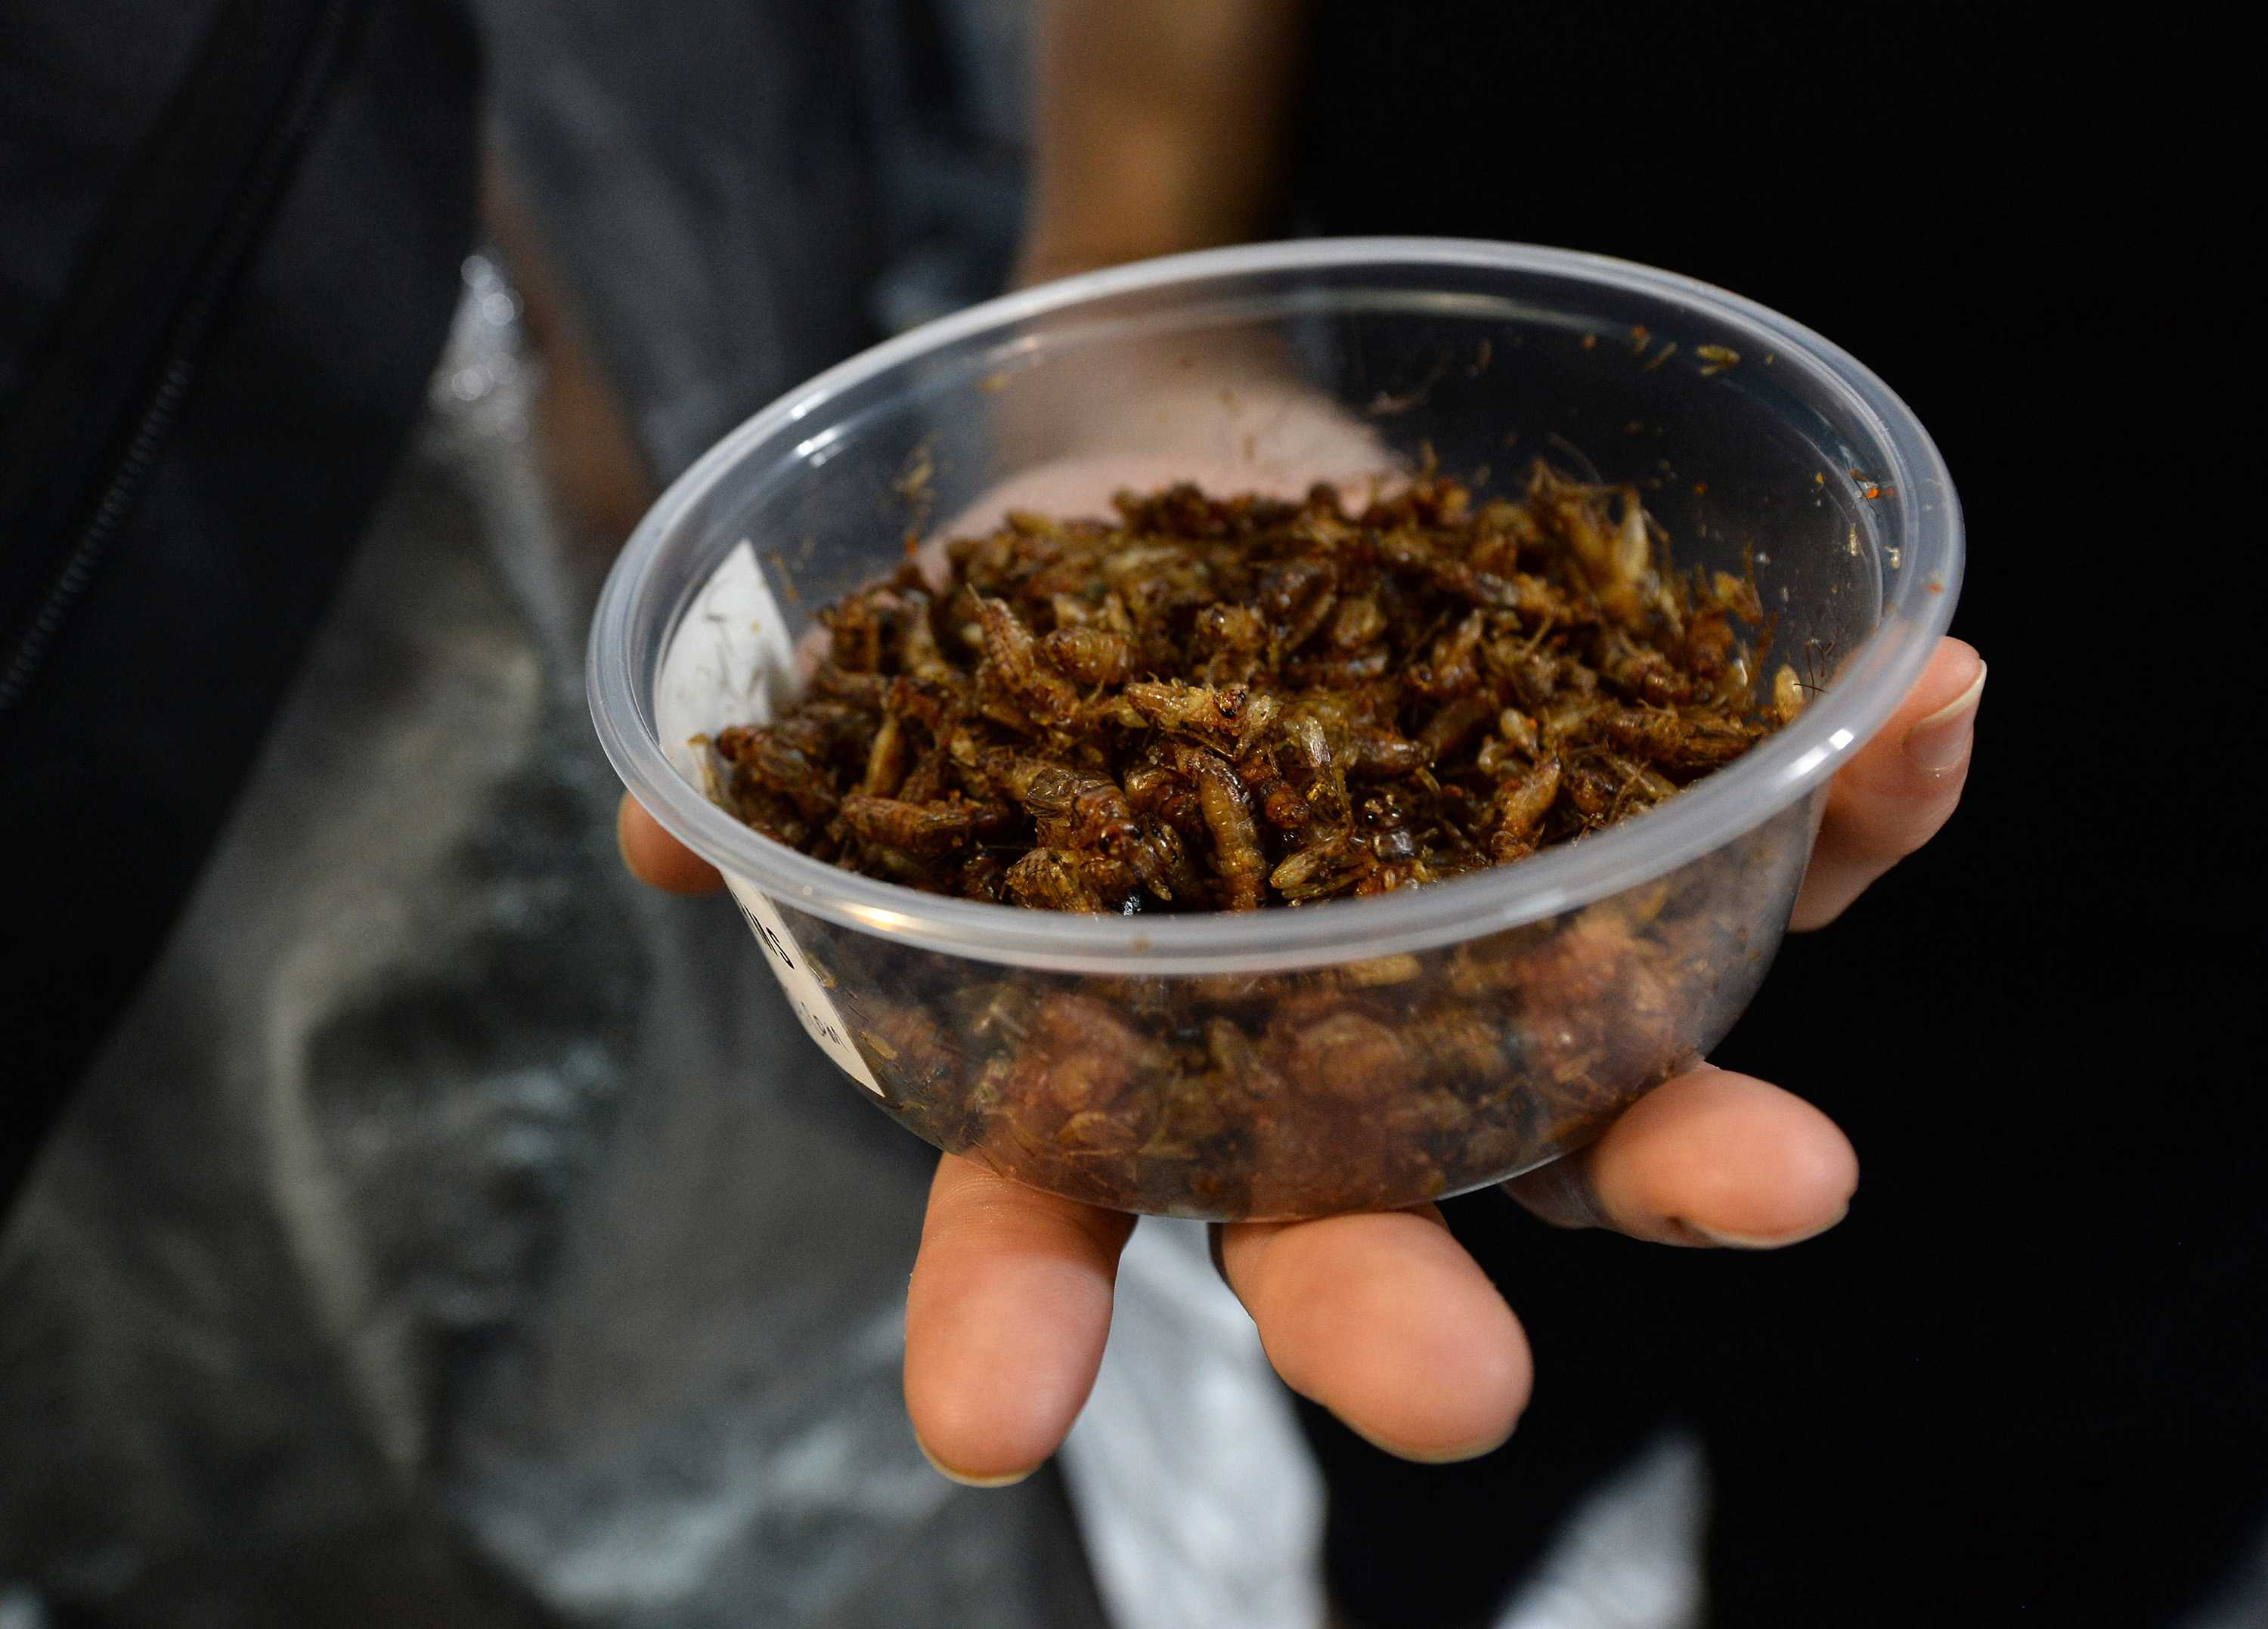 Co-founder Andrew Brentano, of Berkeley, hold a container of roasted crickets at Tiny Farms in Oakland, Calif., on Thursday, Aug. 4, 2016. Tiny Farms breeds and raises crickets, which have become a trendy course of protein. The insects can be roasted and consumed as a snack or ground into